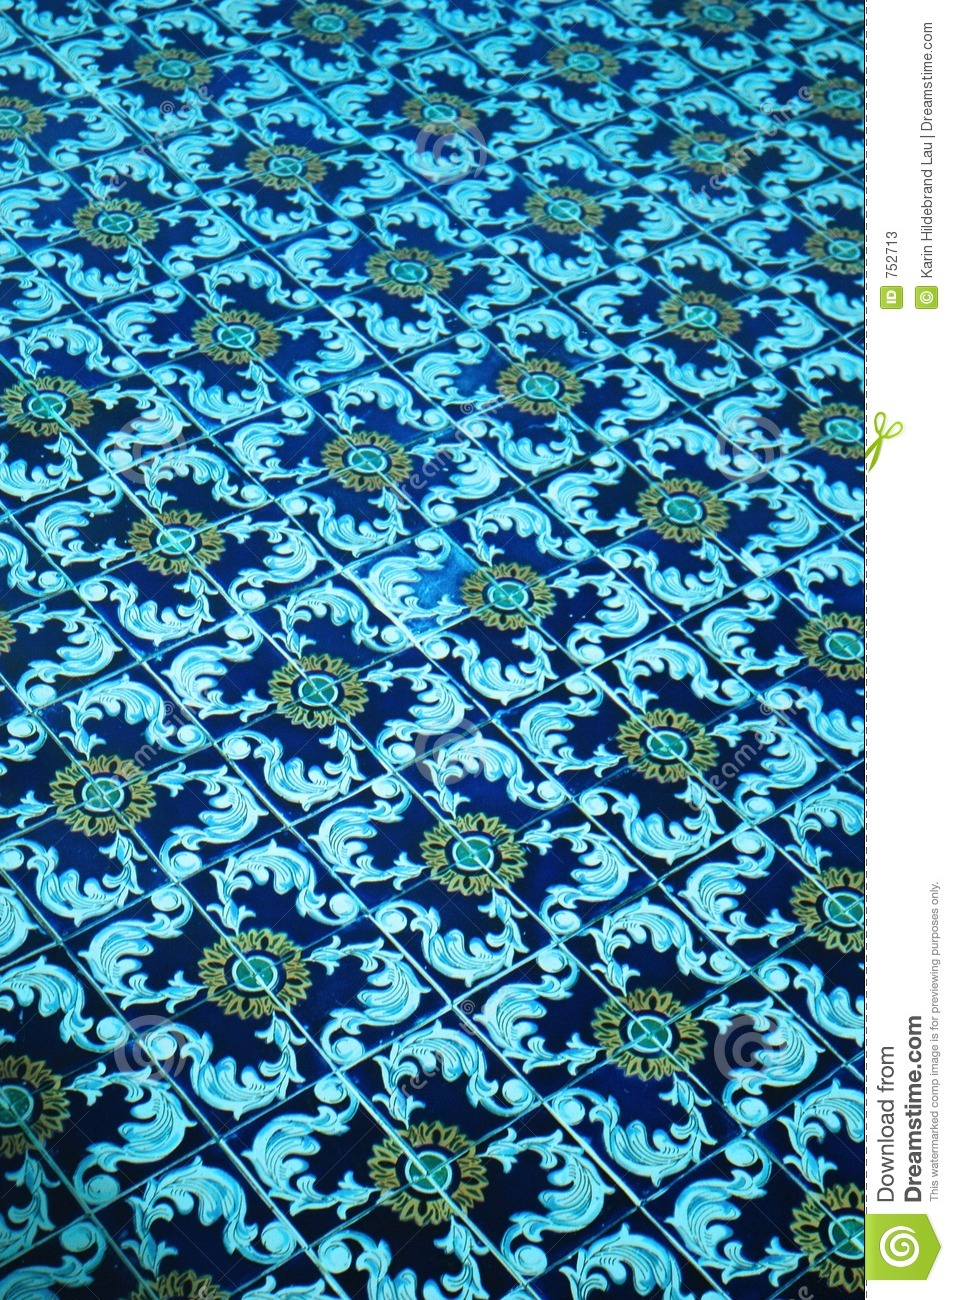 Decorative Tiles Spanish Tile In Pool Stock Photos - Image: 752713